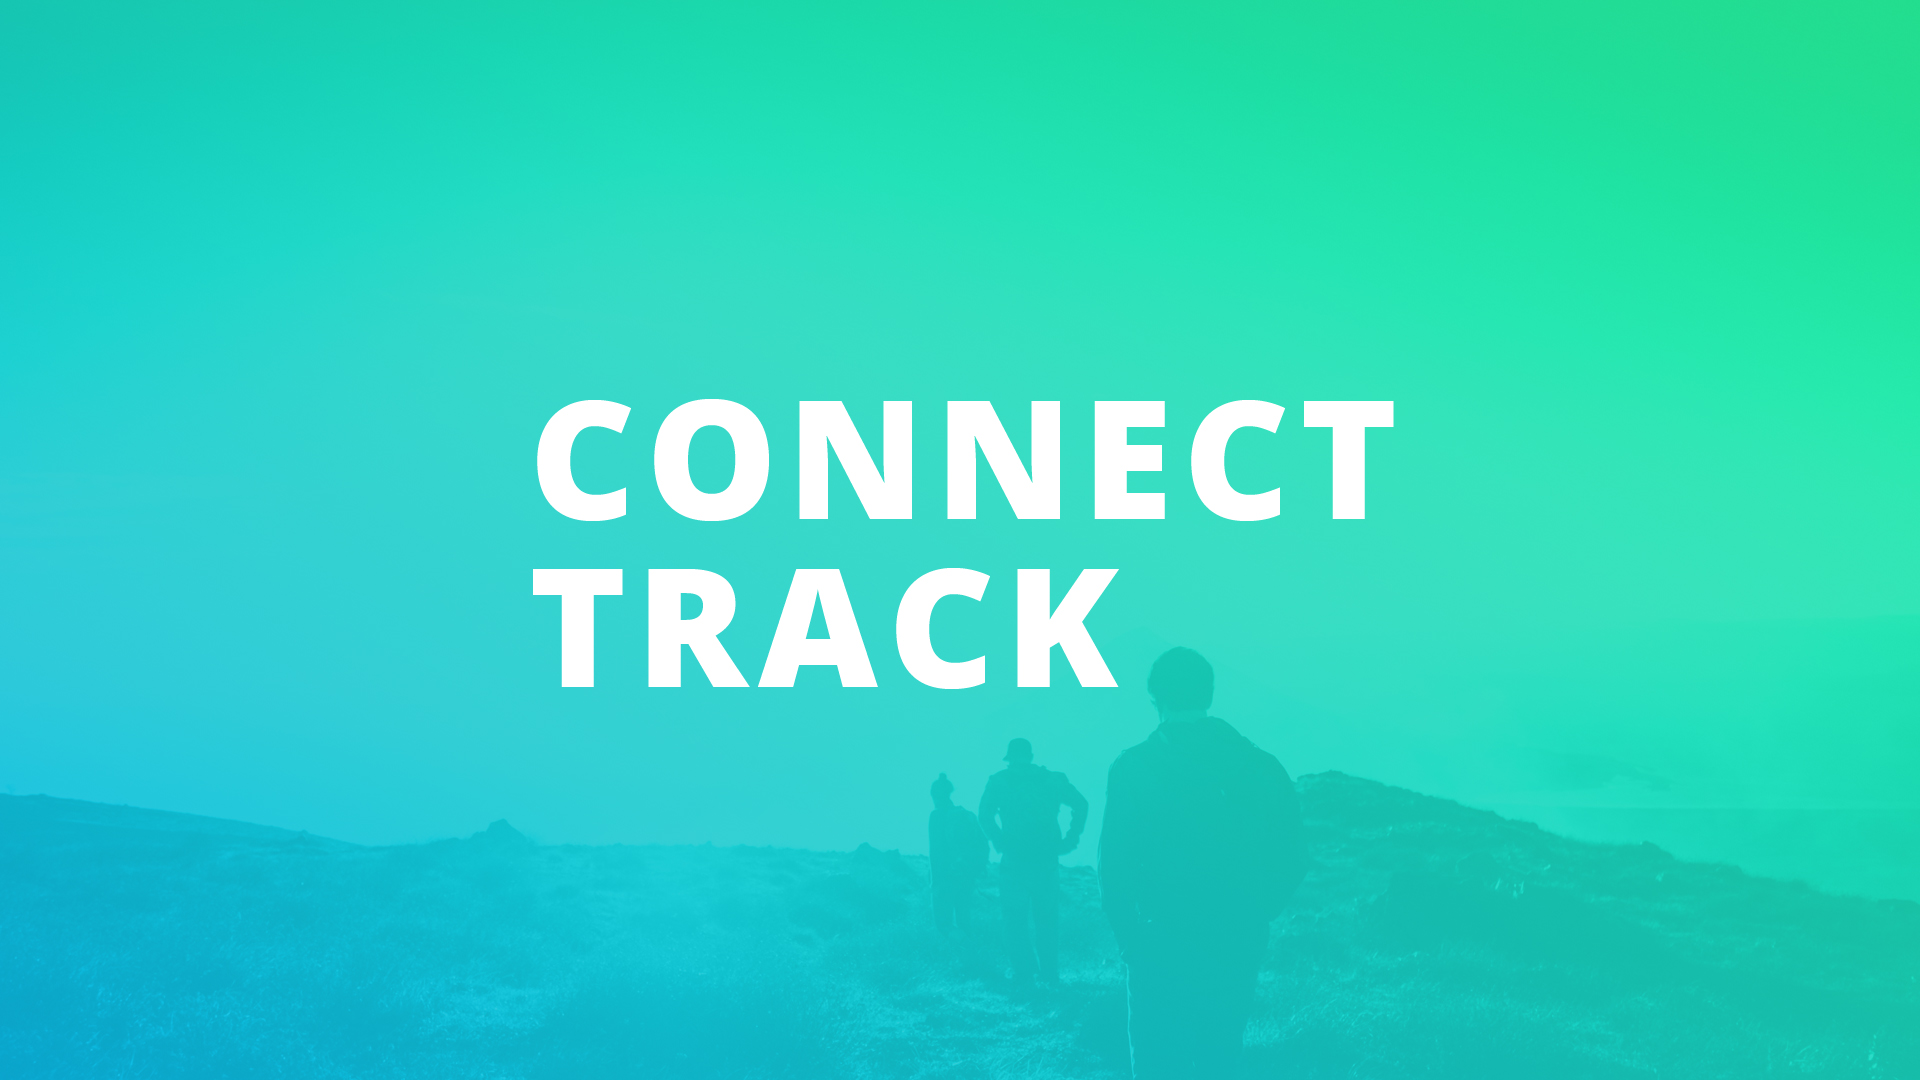 Connect Track